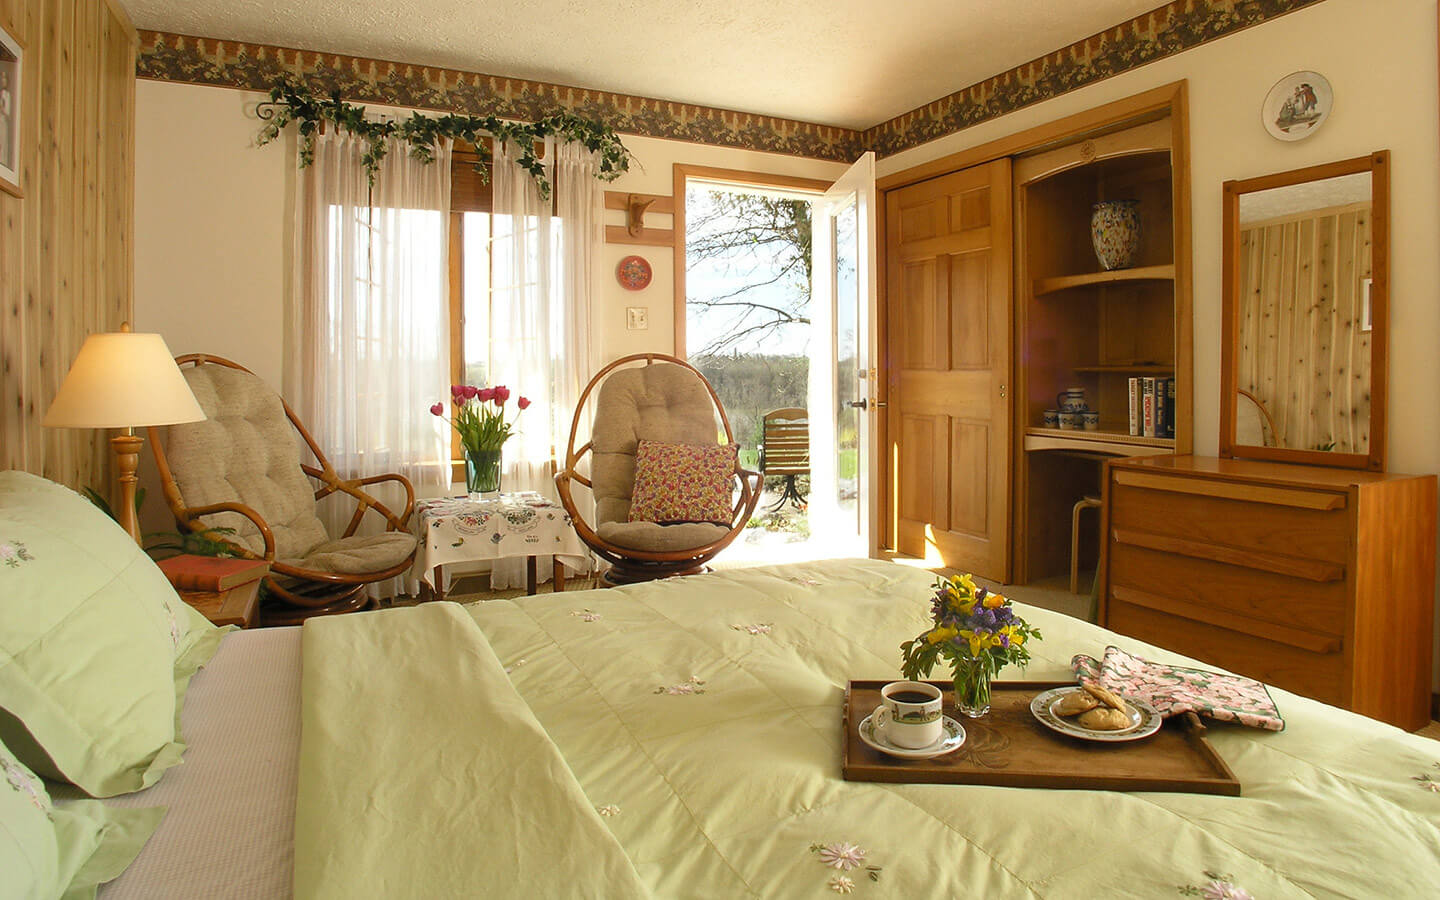 Lugano Room bed and seating area at our Lancaster County, PA B&B